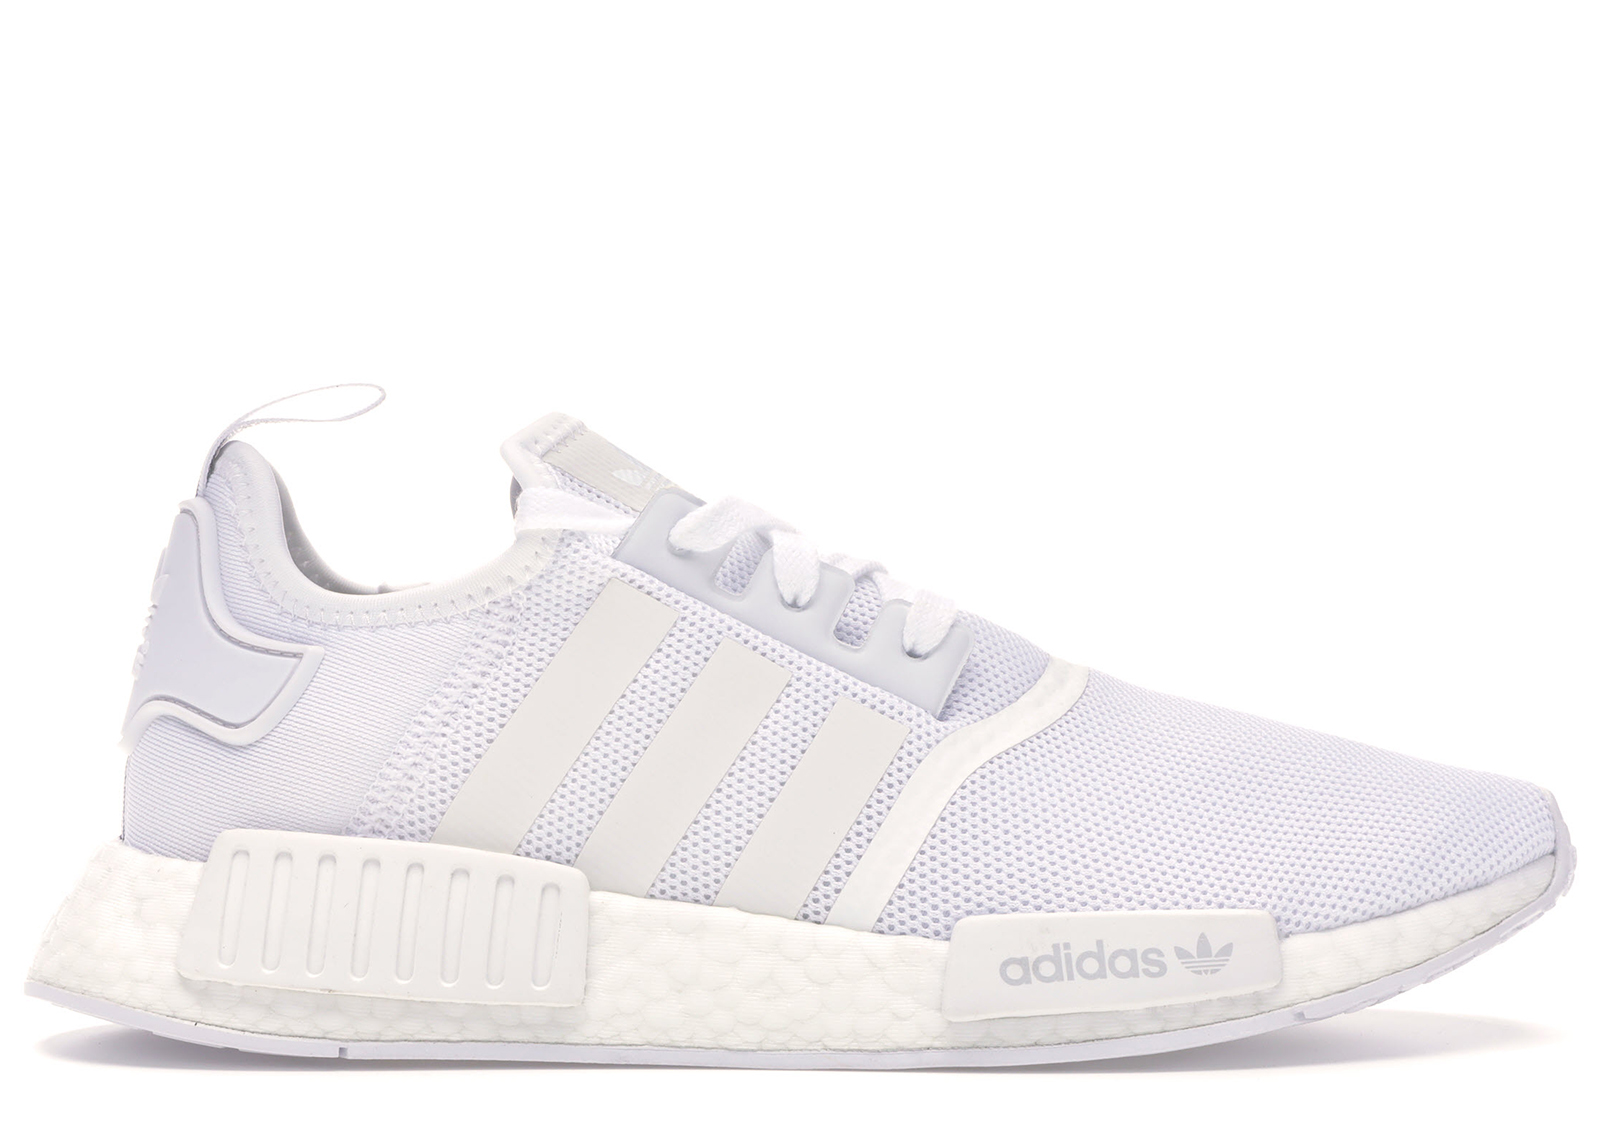 adidas NMD R1 Footwear WhiteFootwear WhiteTrace Grey